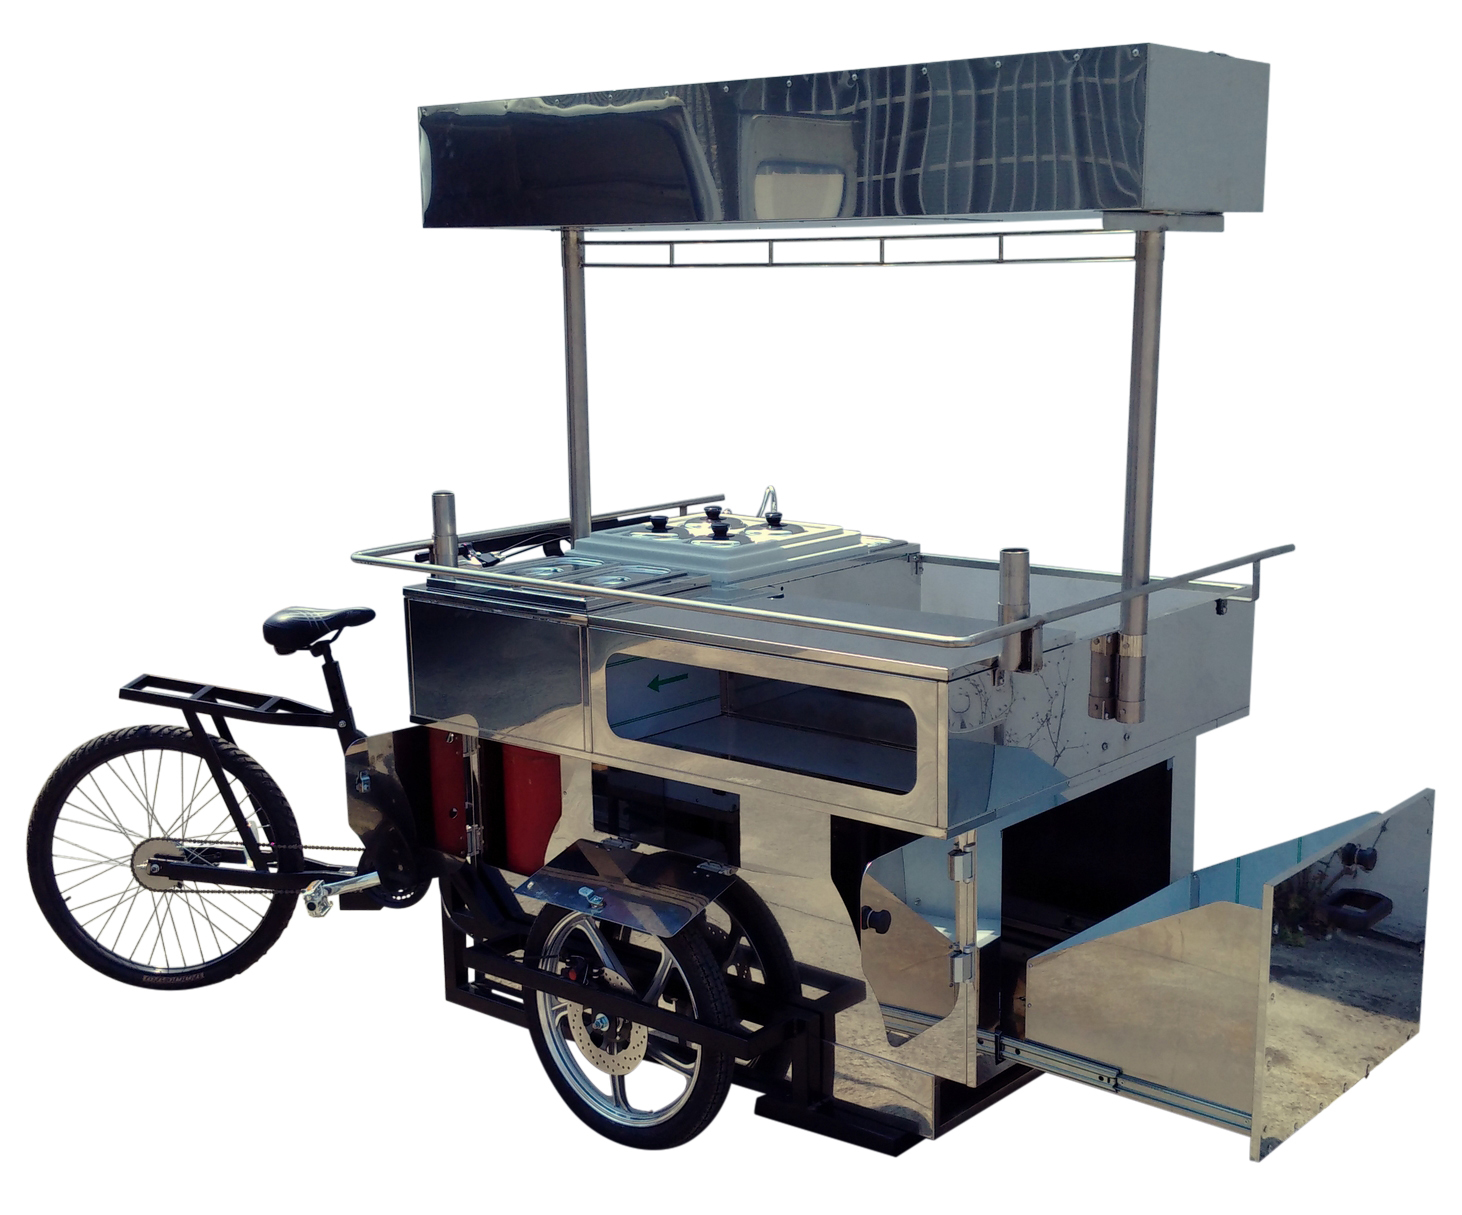 Street Food Carts On Tricycles Bikes